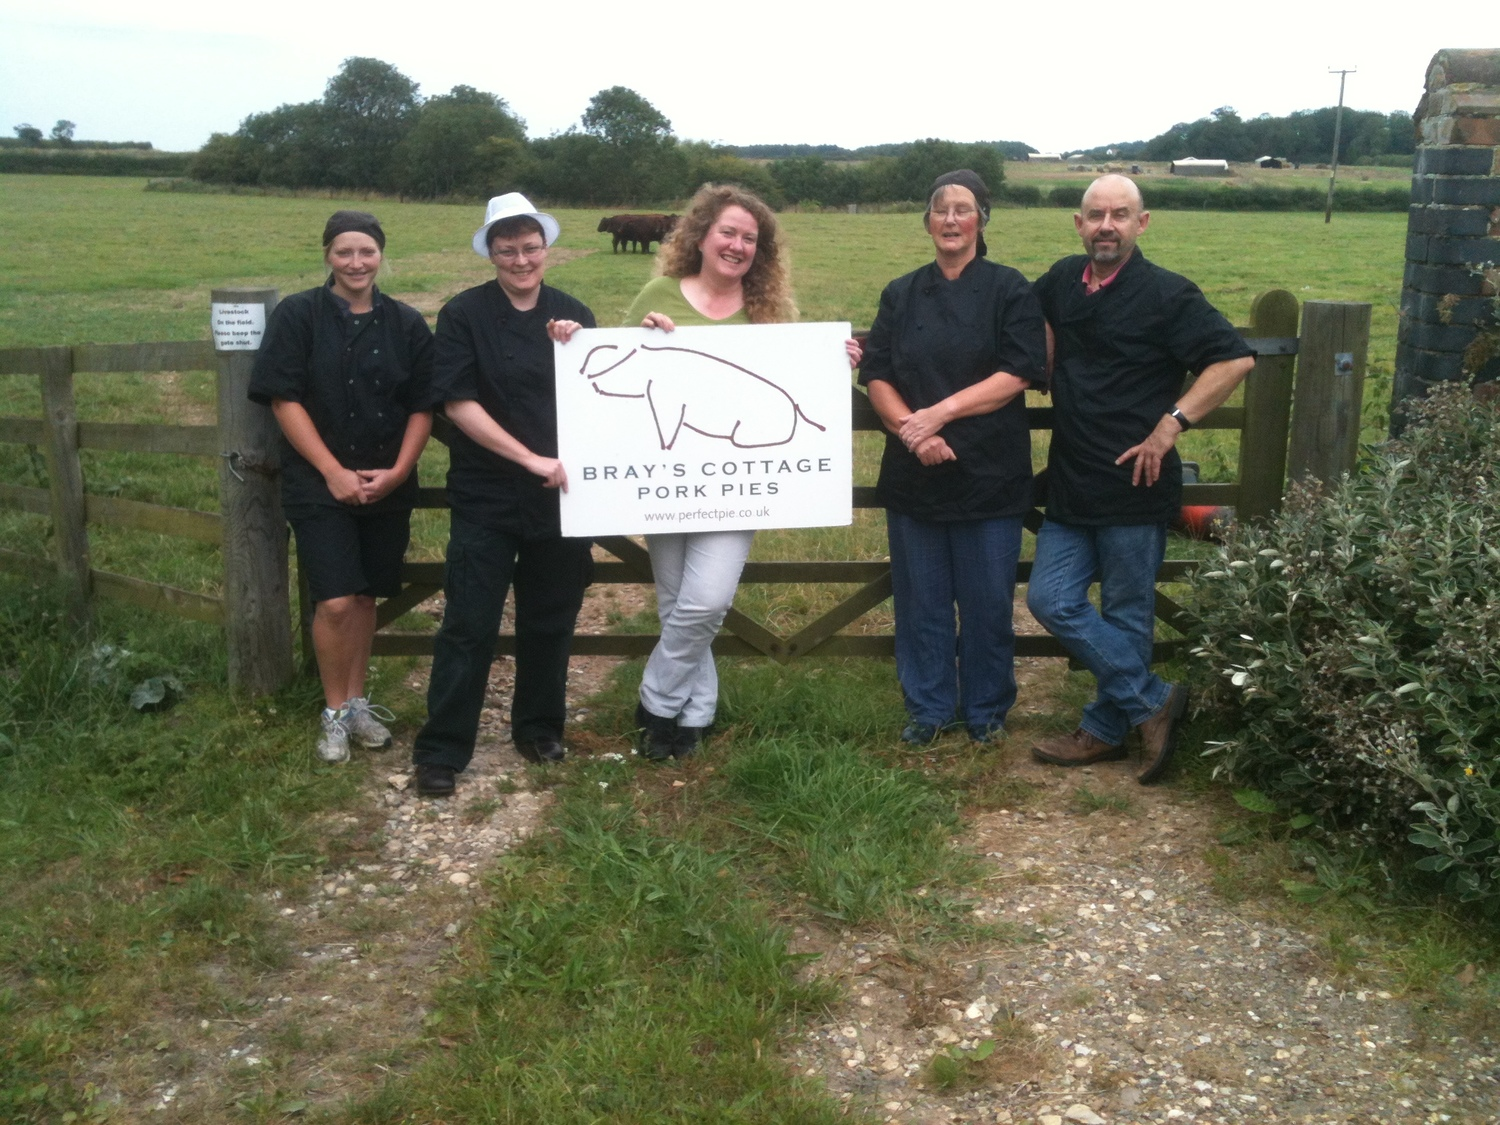 The Brays Cottage Pork Pie team in the fields of North Norfolk